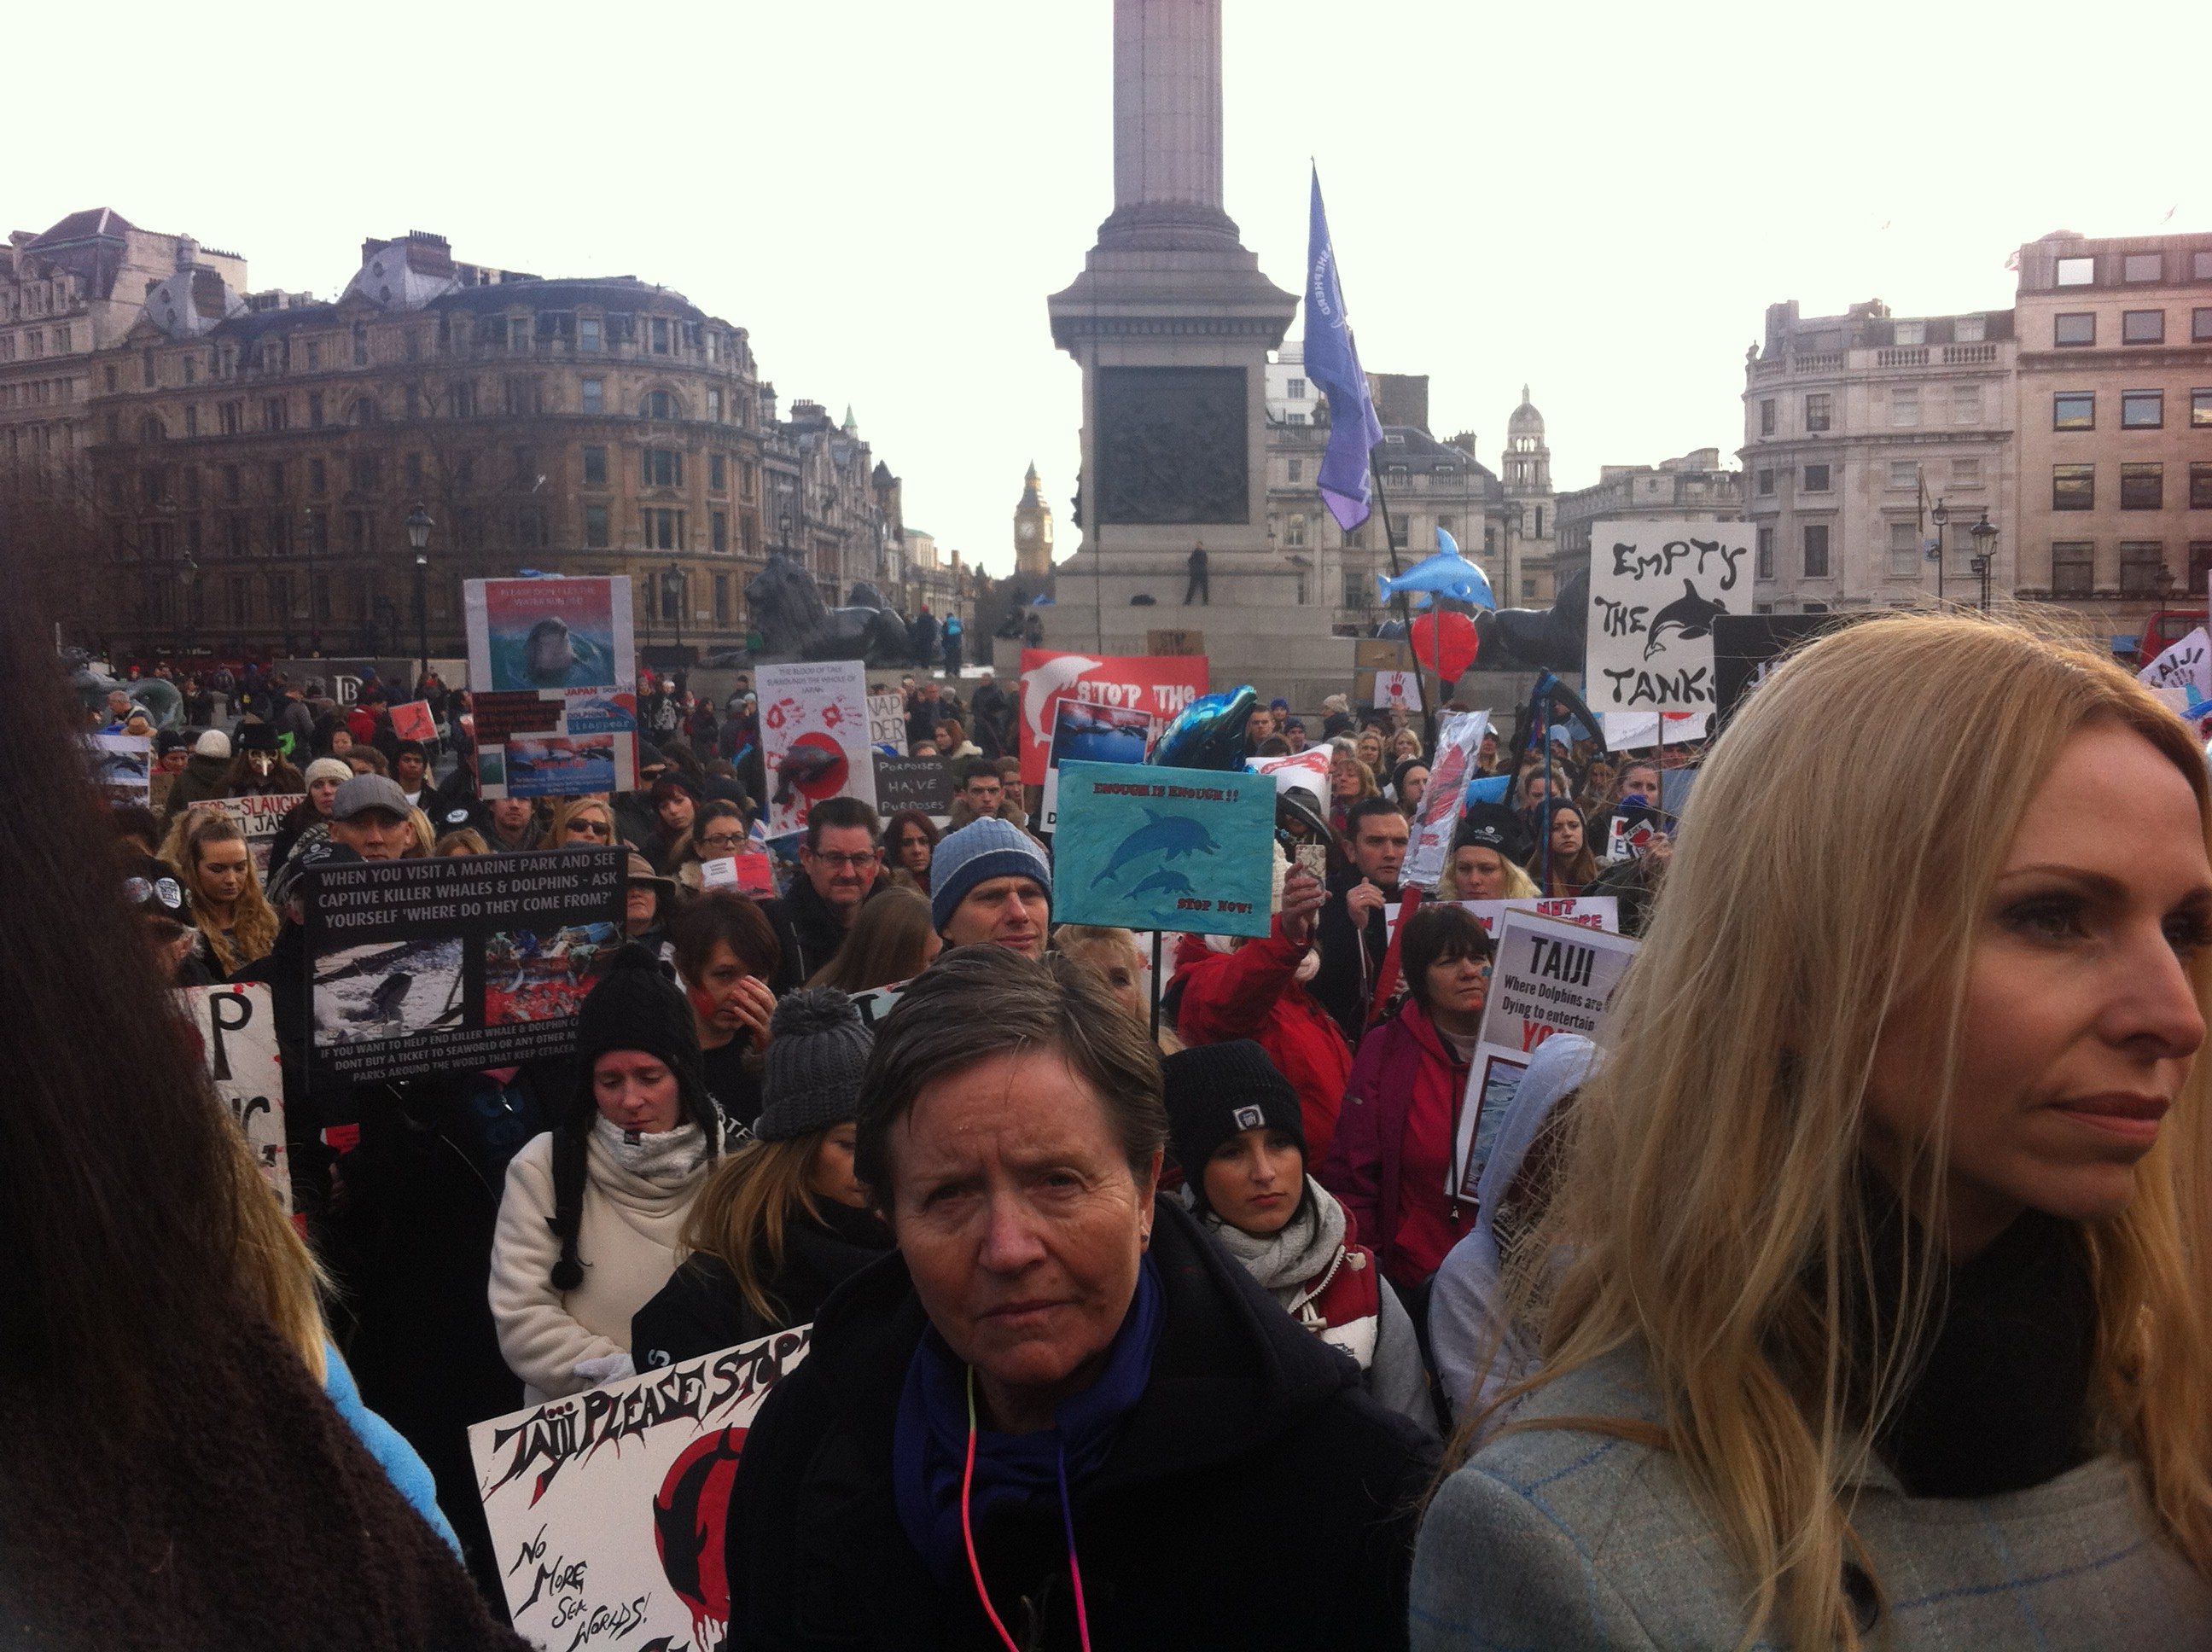 Anneka Svenska, dolphin march, London